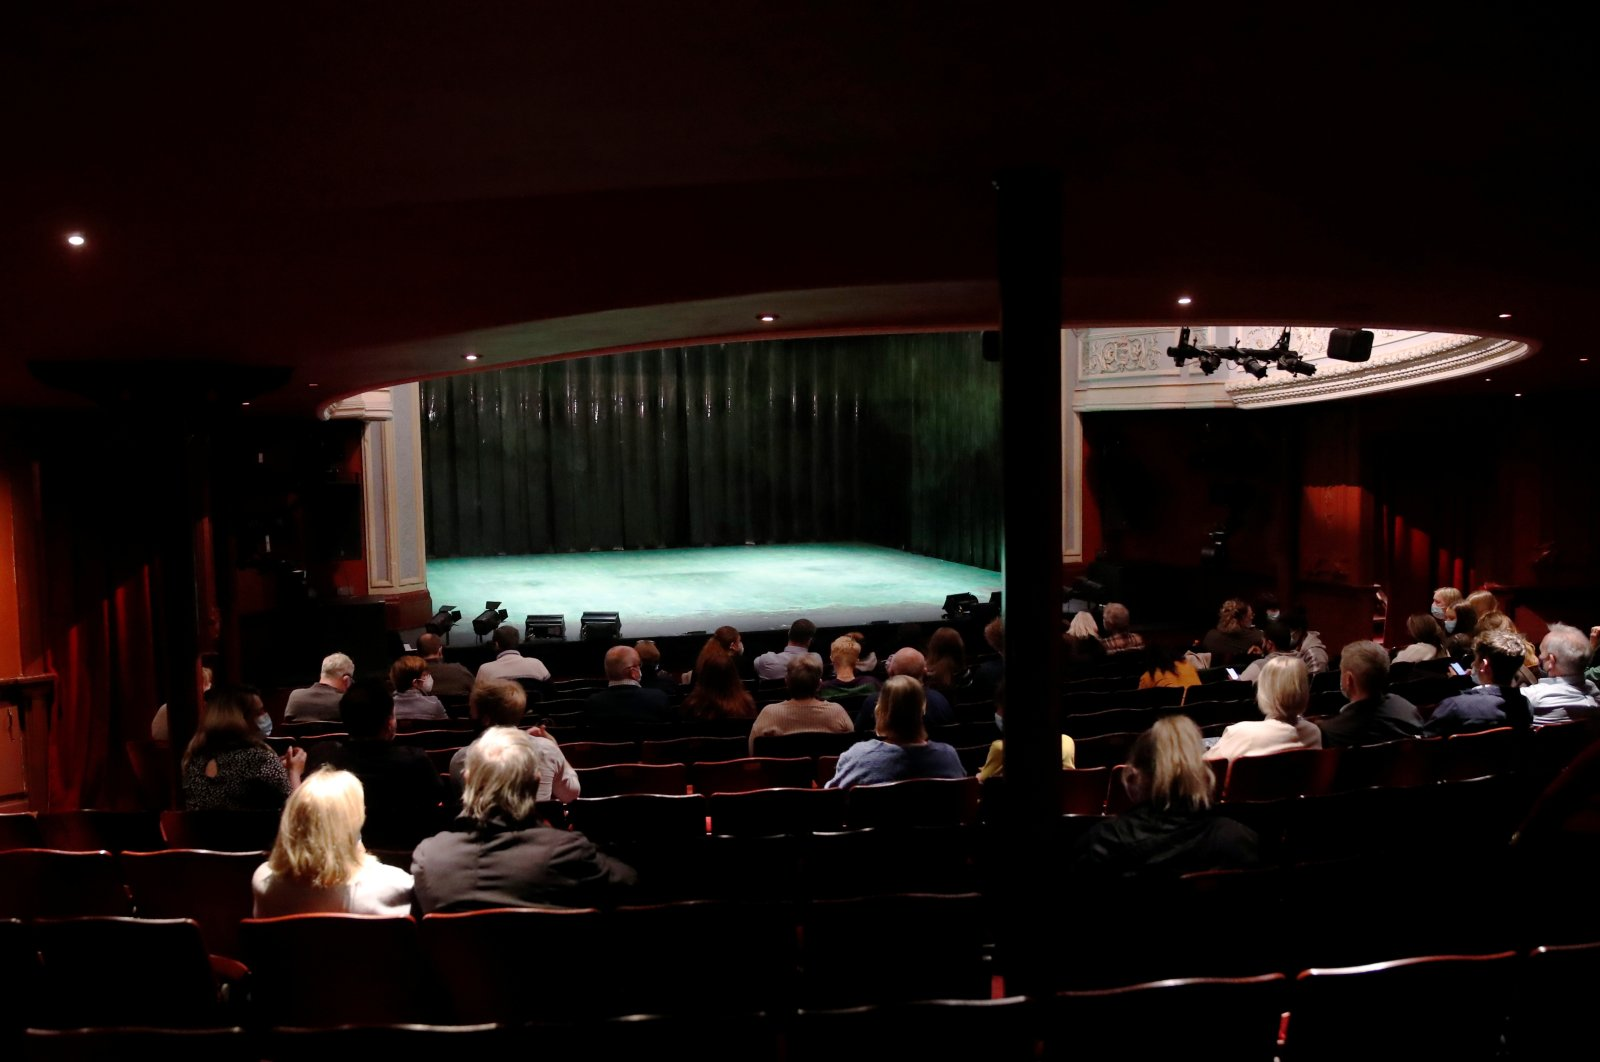 """Members of the audience wait in their seats at the Royal & Derngate for the start of the National Youth Theatre's co-production of """"Animal Farm"""" as COVID-19 restrictions continue to ease, in Northampton, U.K., May 17, 2021. (Reuters Photo)"""